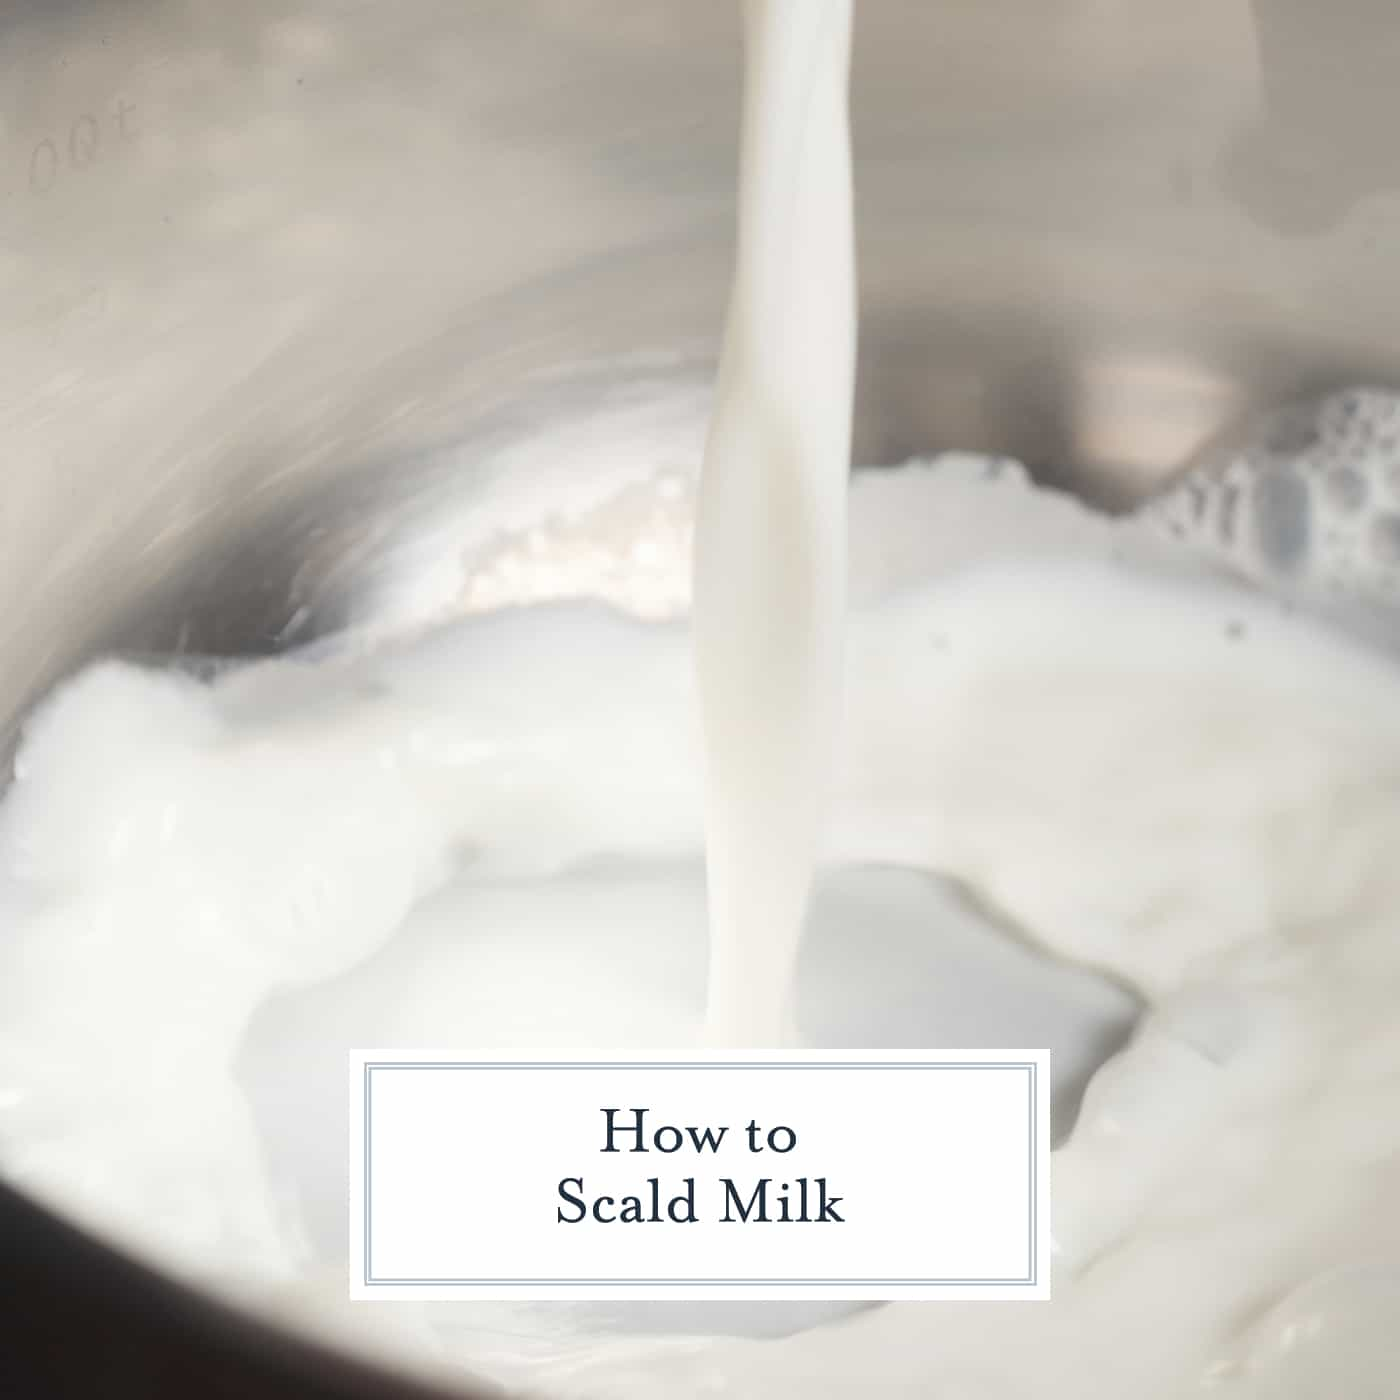 Milk Pouring into a pan to scald